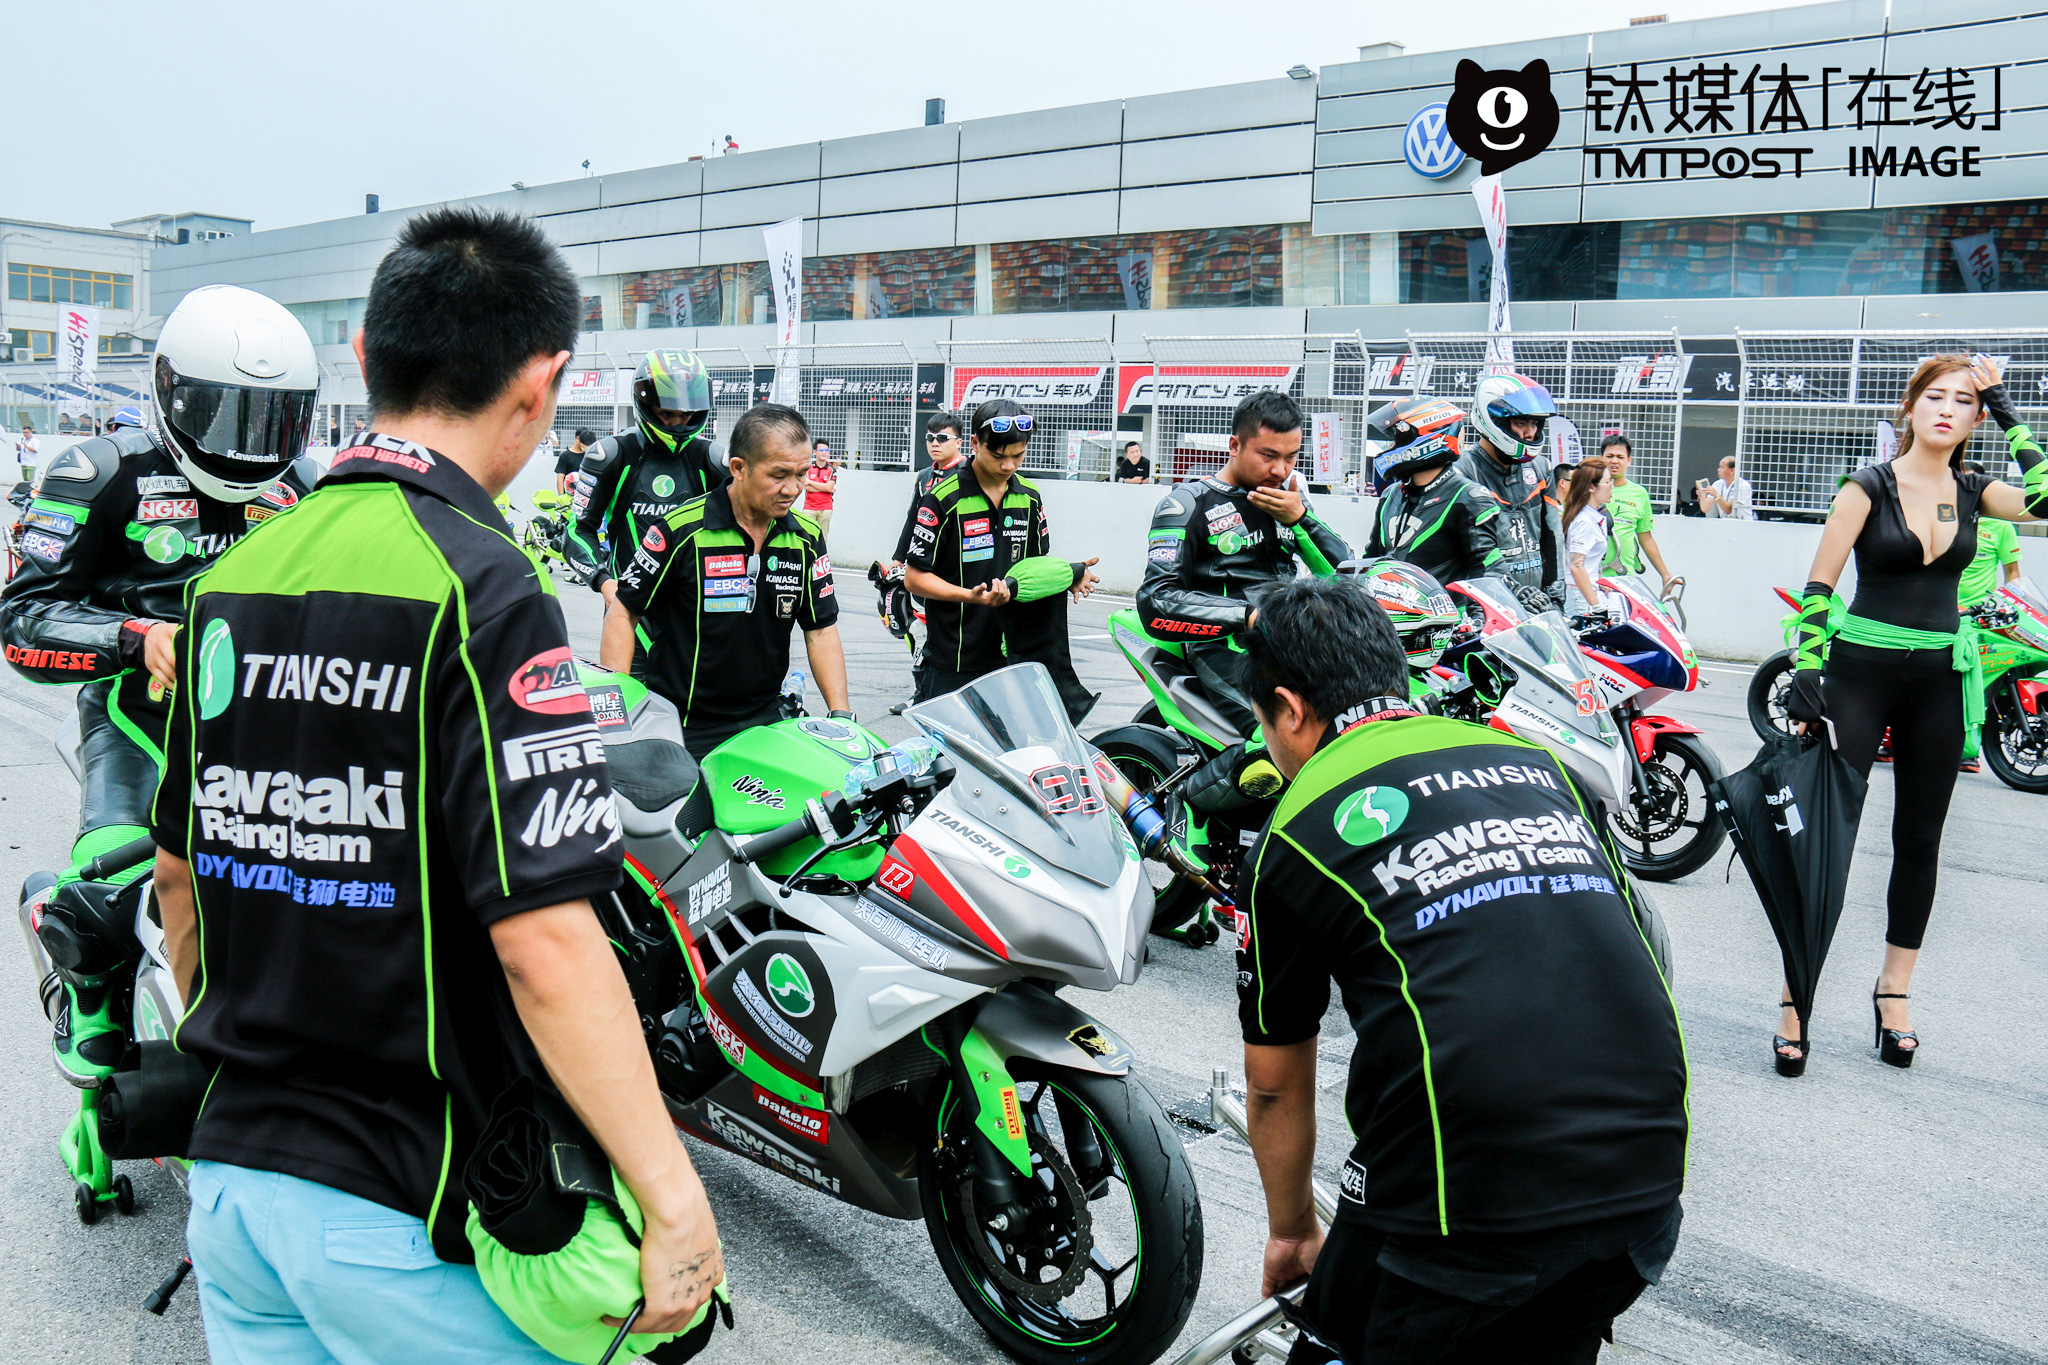 "On July, 16th, 2016, CMBC was held on Beijing Goldenport Circuit, and over 150 race motorcycle riders participated in the game. ""We raised over 9 million yuan sponsor fee for the game, but we still didn't make any profit,"" Zhang Lei, an organizer of the event, told TMTpost. Mr. Zhang organized such national games six to eight times every year, and was very optimistic about the future of race motorcycle market, believing that riding motorcycles is becoming increasingly popular among young Chinese riders, more and more race motorcycle circuits are built in many first and second-tier cities across China and both Chinese and foreign motorcycle makers are busy holding, promoting as well as sponsoring race motorcycle games."